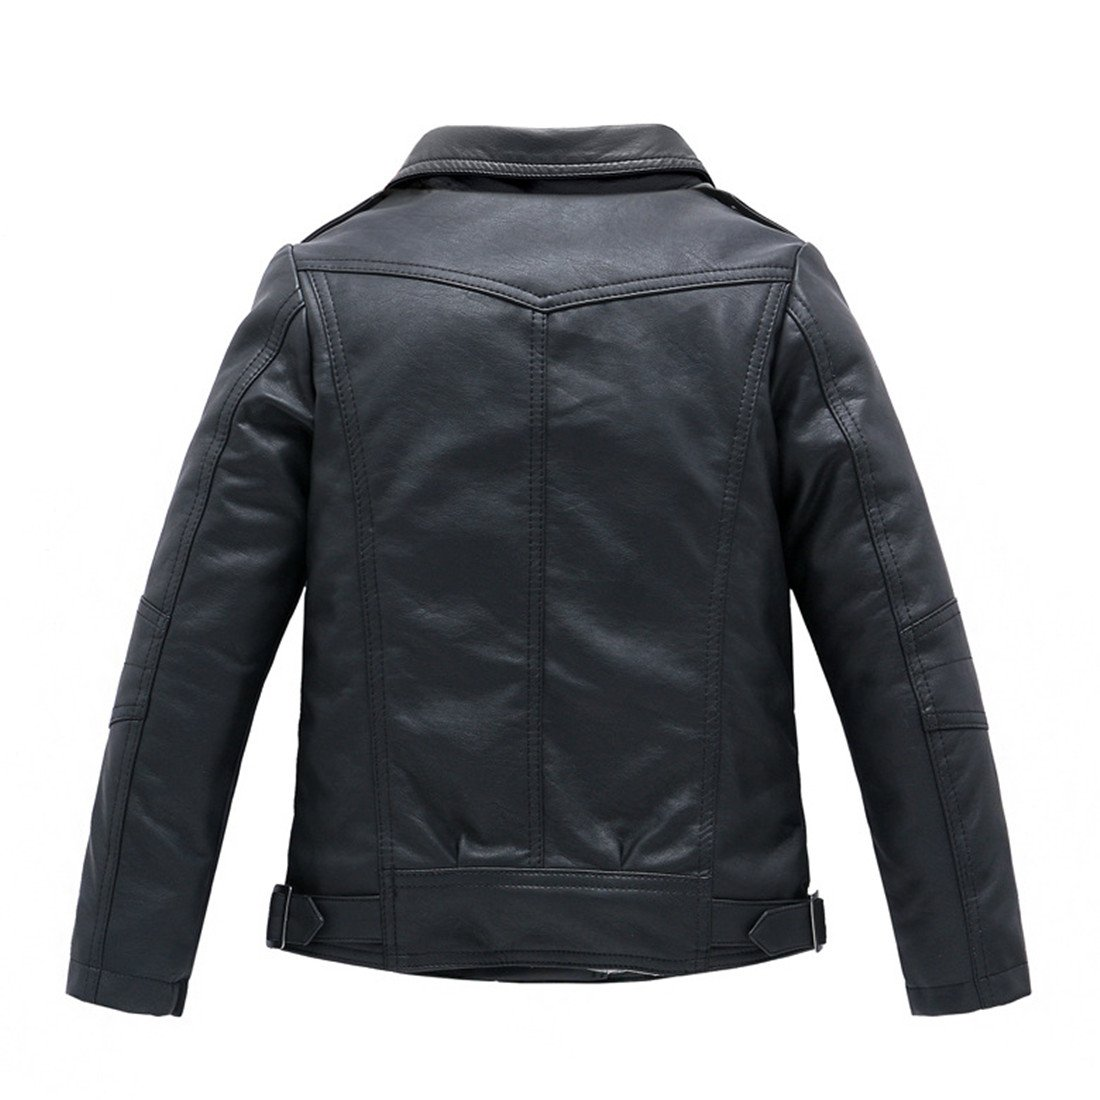 LJYH Childrens Collar Motorcycle Faux Leather Coat Boys Faux Leather Jacket